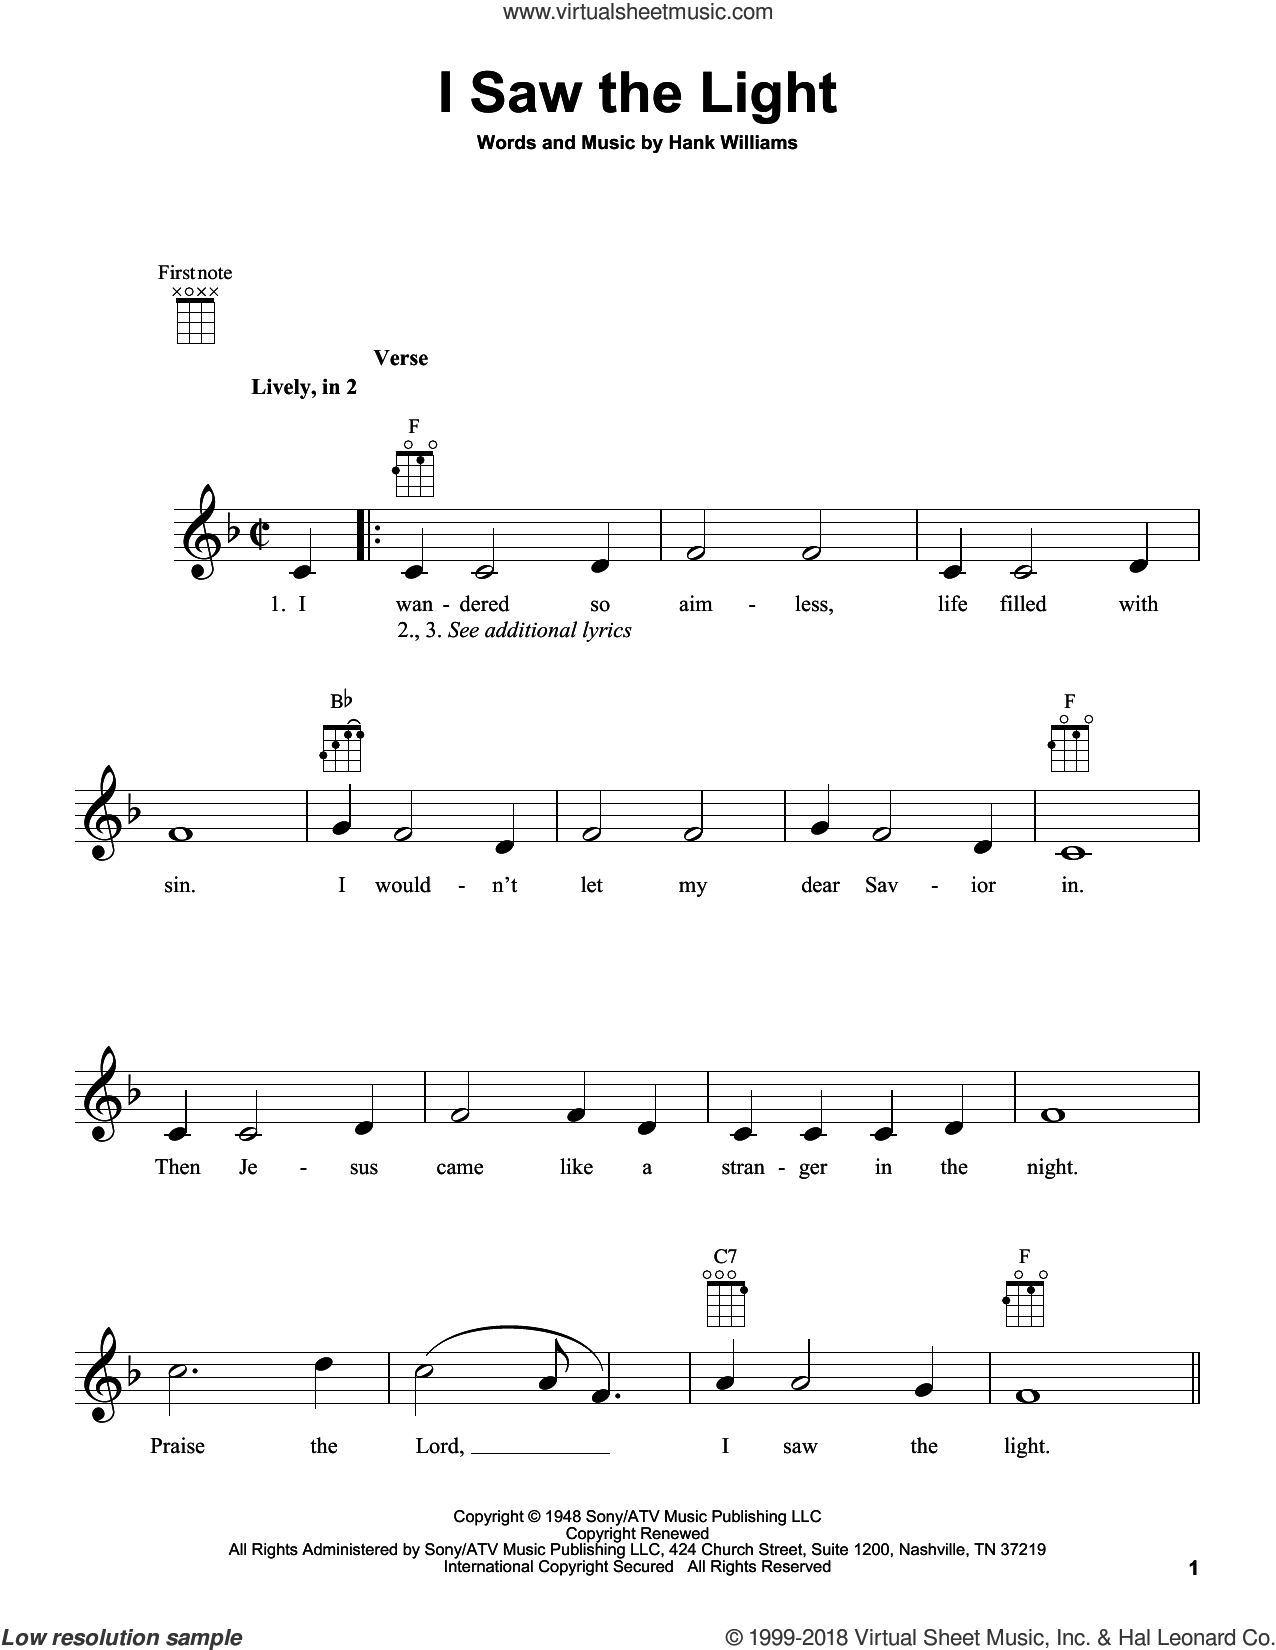 I Saw The Light sheet music for ukulele by Hank Williams, intermediate skill level